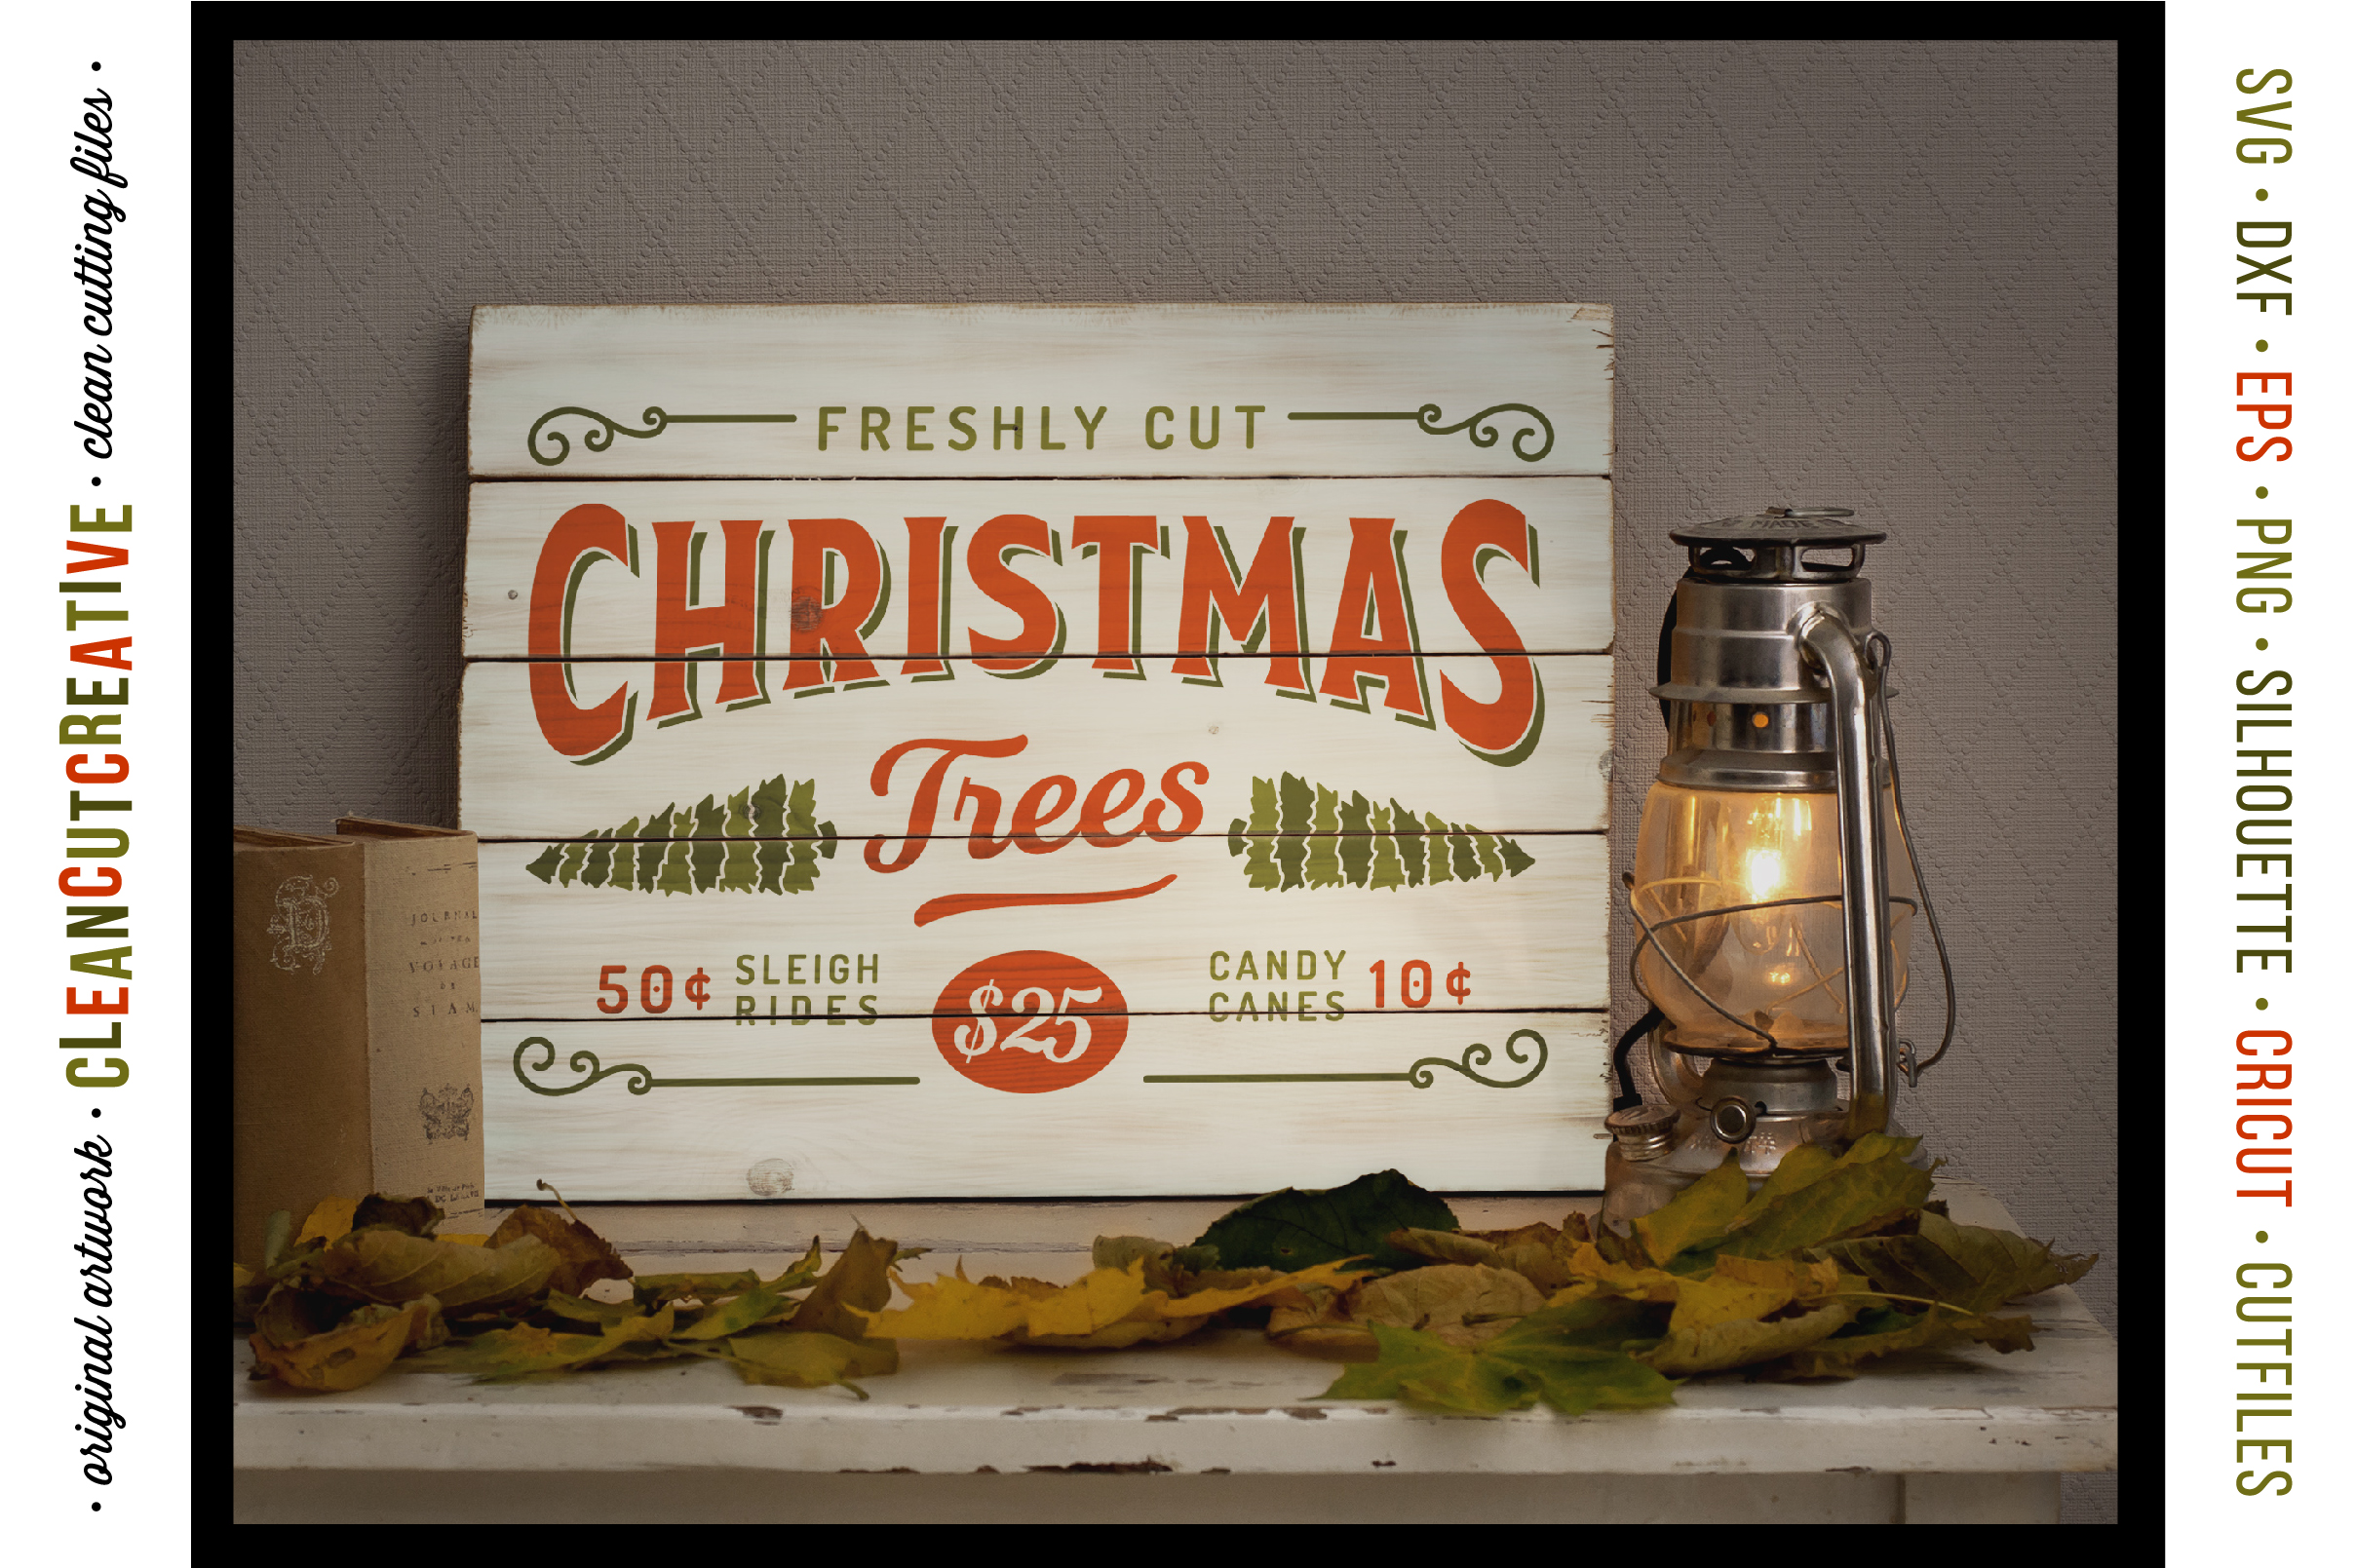 Freshly Cut Christmas Trees! - Rustic Farm Wood Sign - SVG DXF EPS PNG - Cricut & Silhouette - clean cutting files example image 2